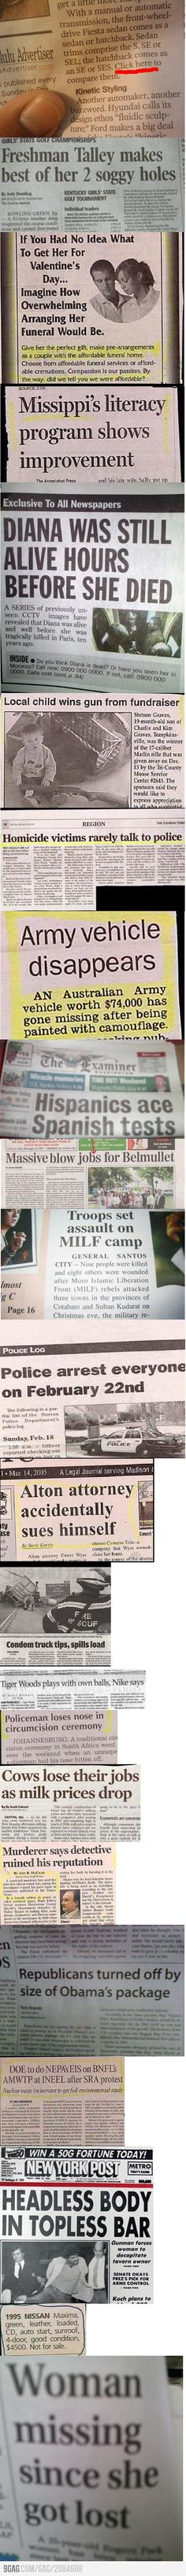 Some unlucky articles in newspapers...the worst part is that I live in the region where one of the articles was published.